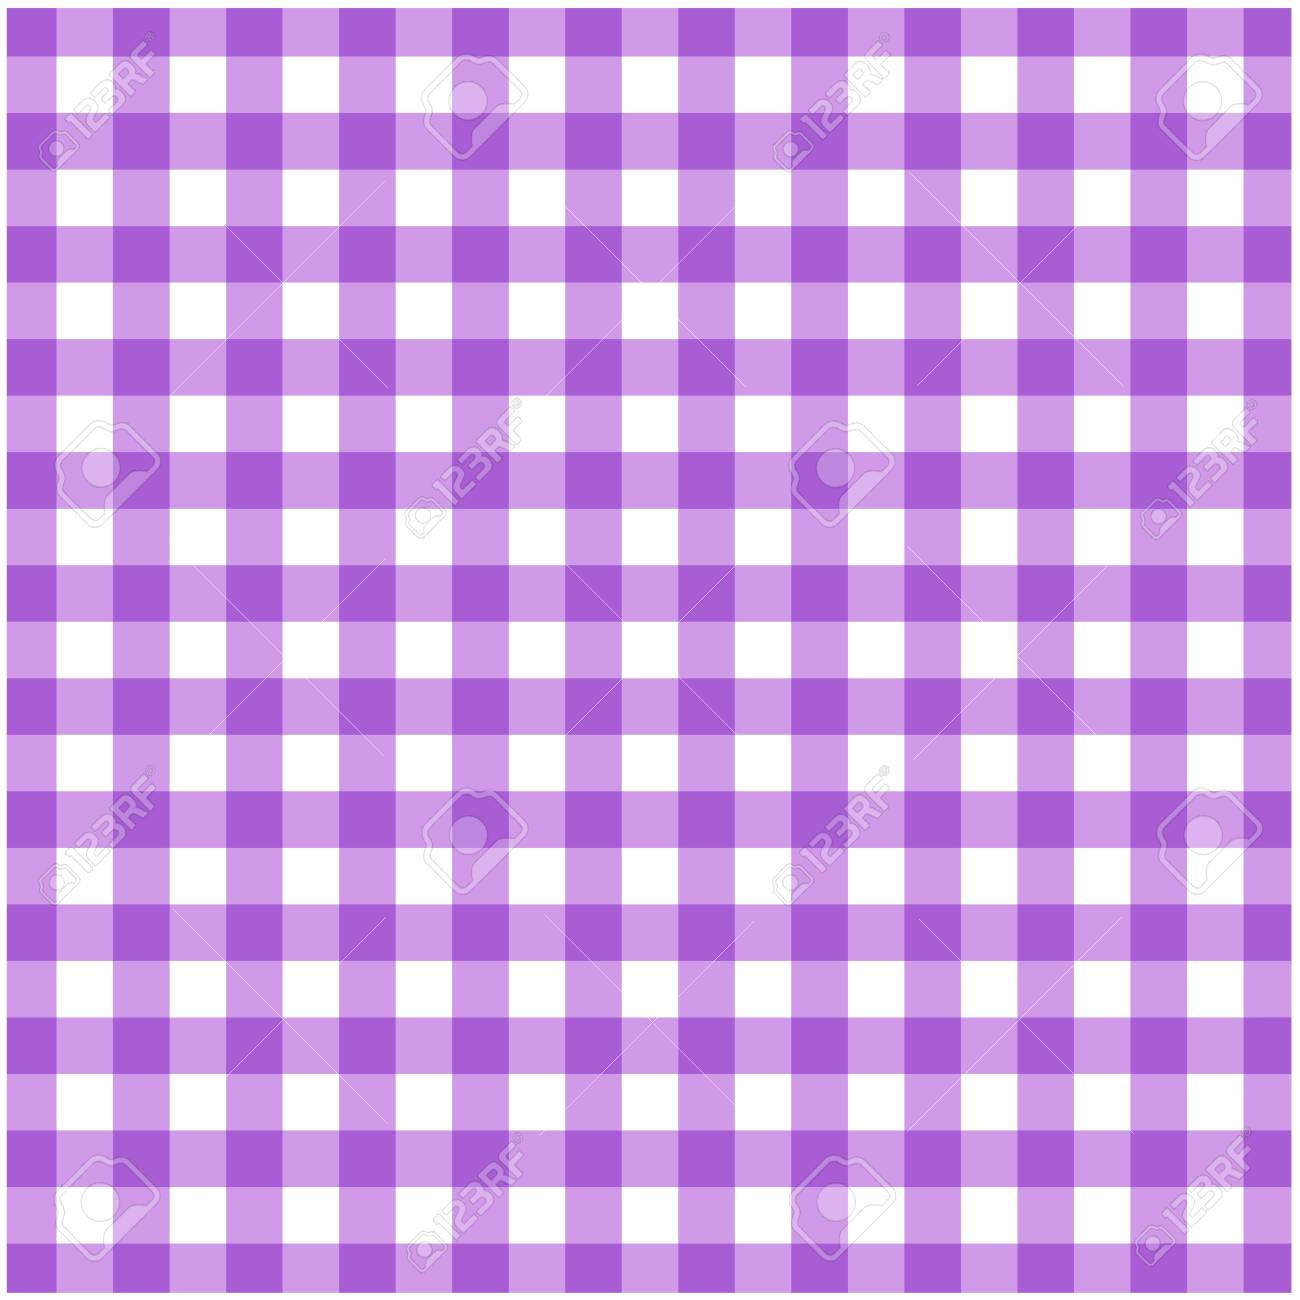 Attractive Tartan Plaid Seamless Pattern. Kitchen Checkered Purple Tablecloth Napkin  Fabric Background. Stock Vector